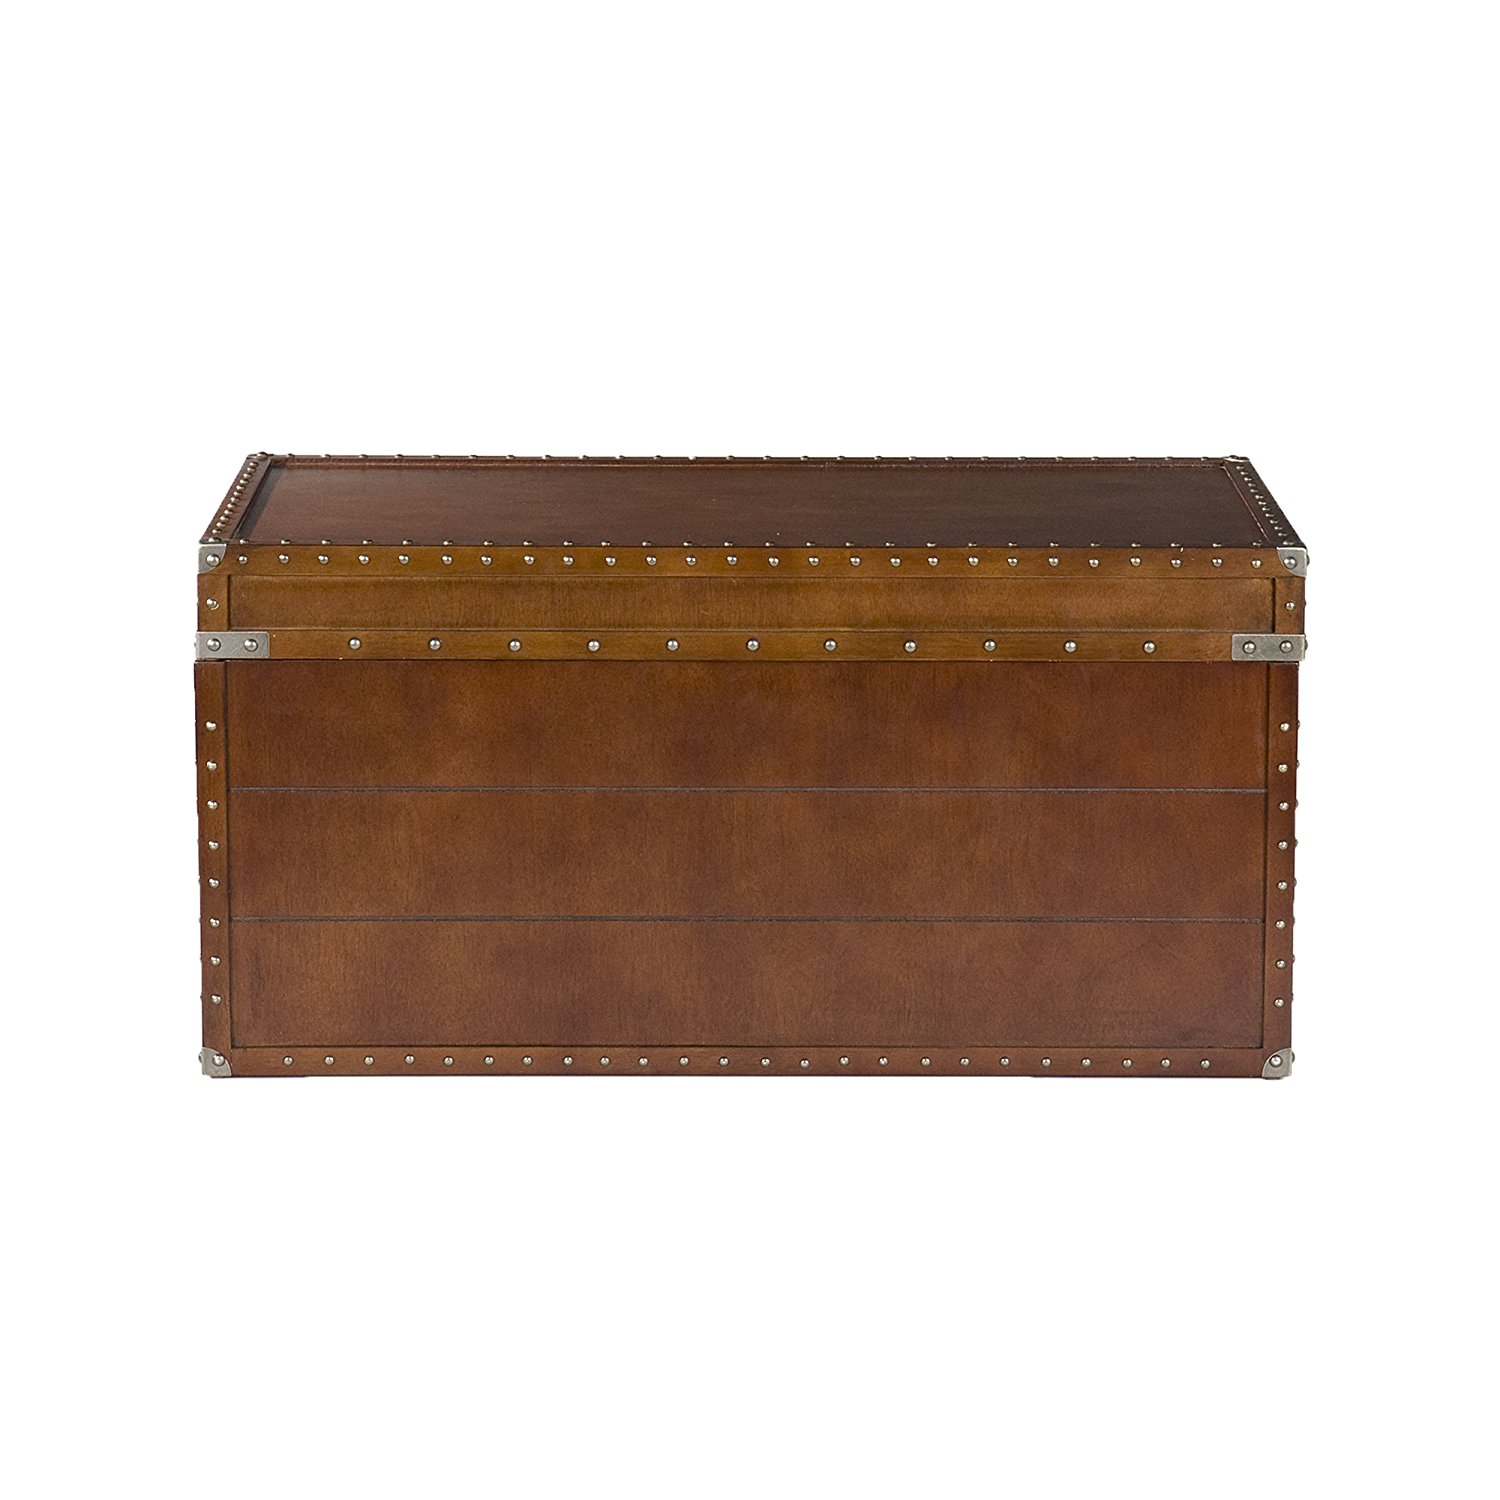 Unique Steamer Trunk Coffee Table As Room Decoration